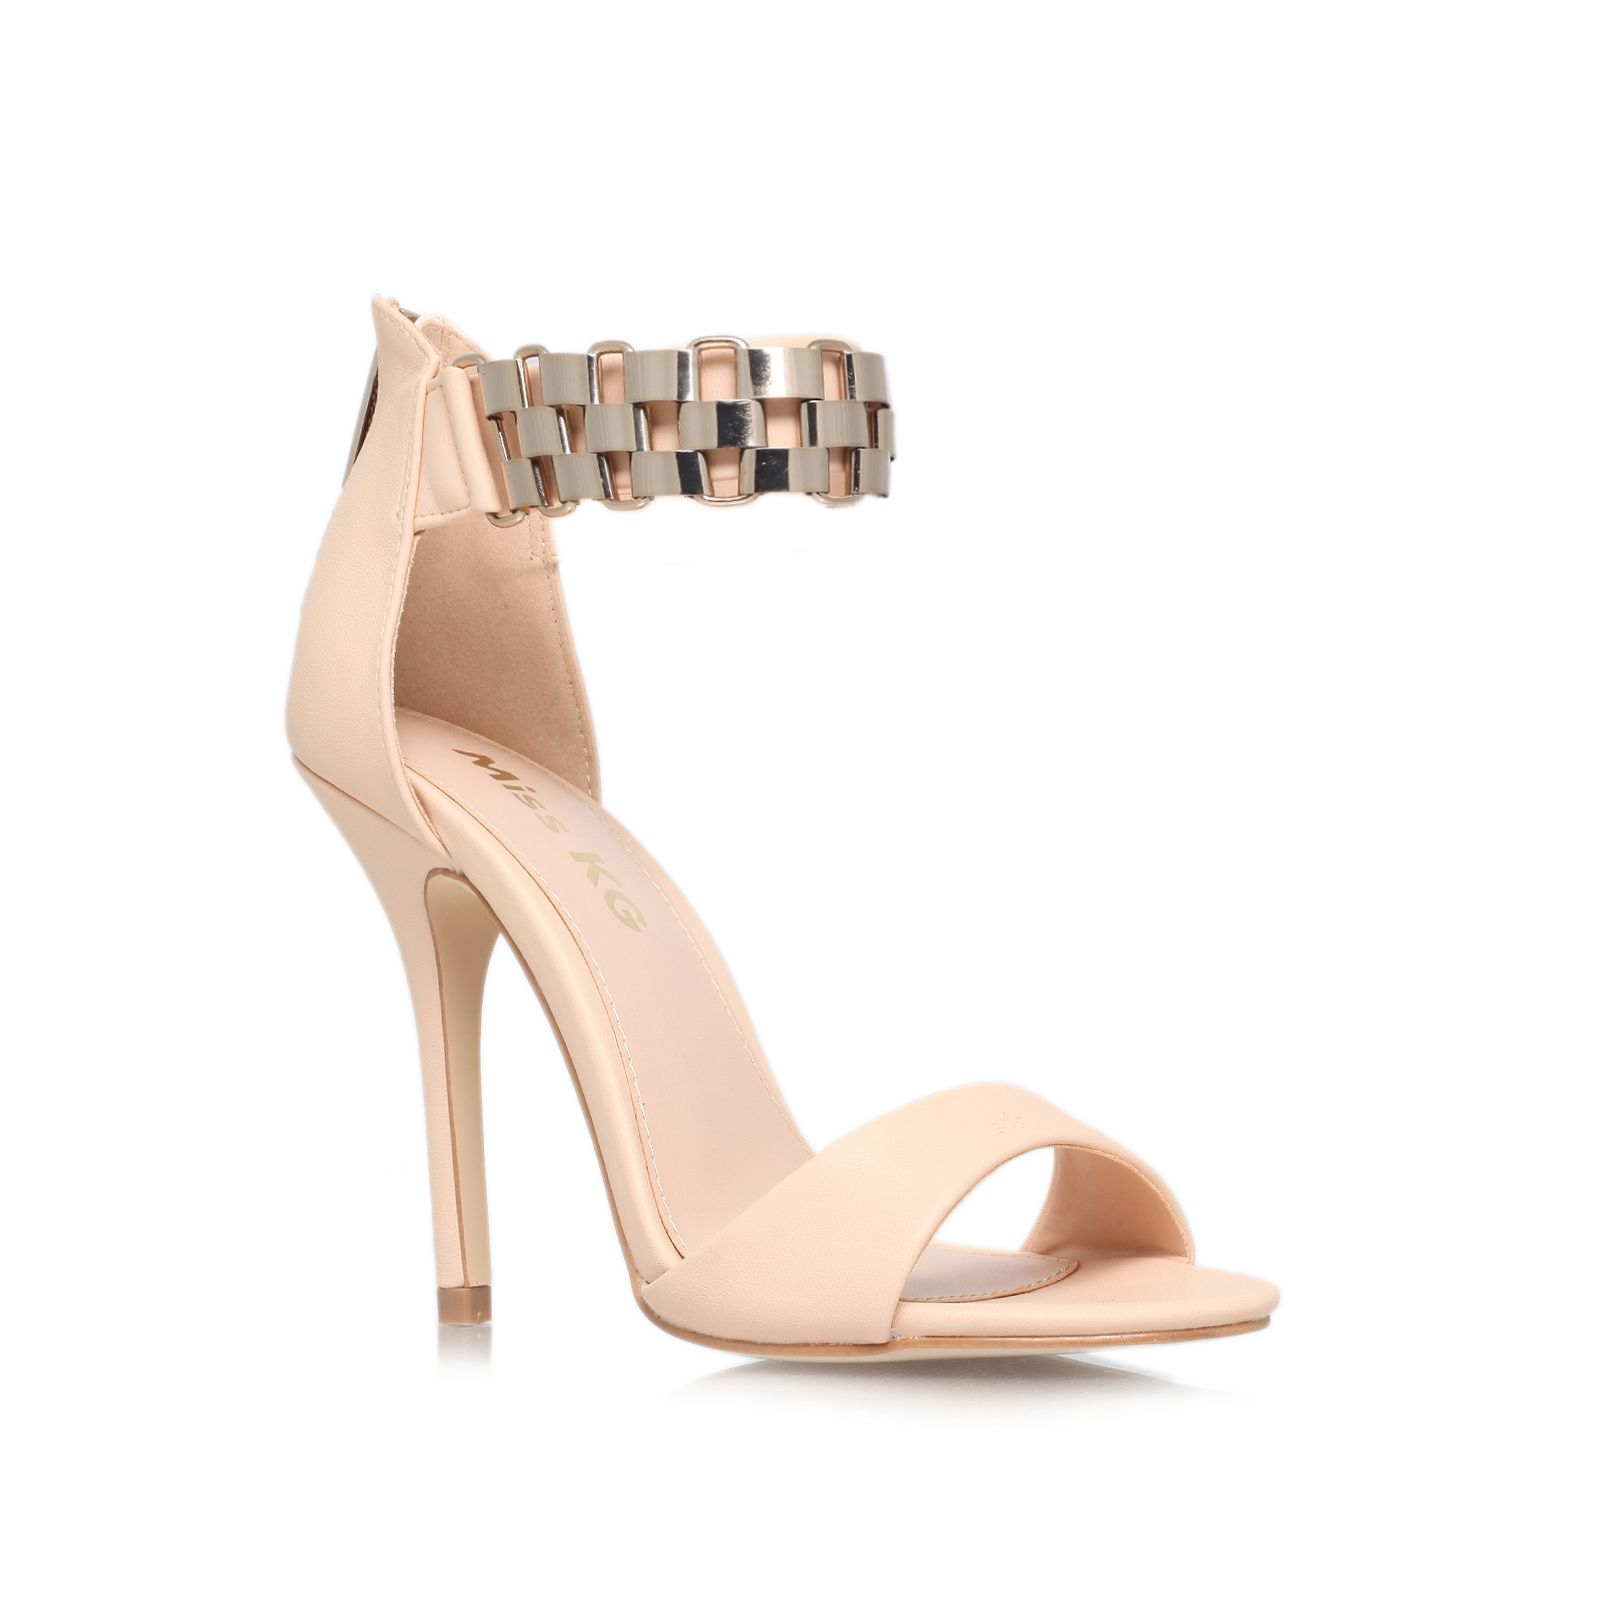 Excite high heel sandals